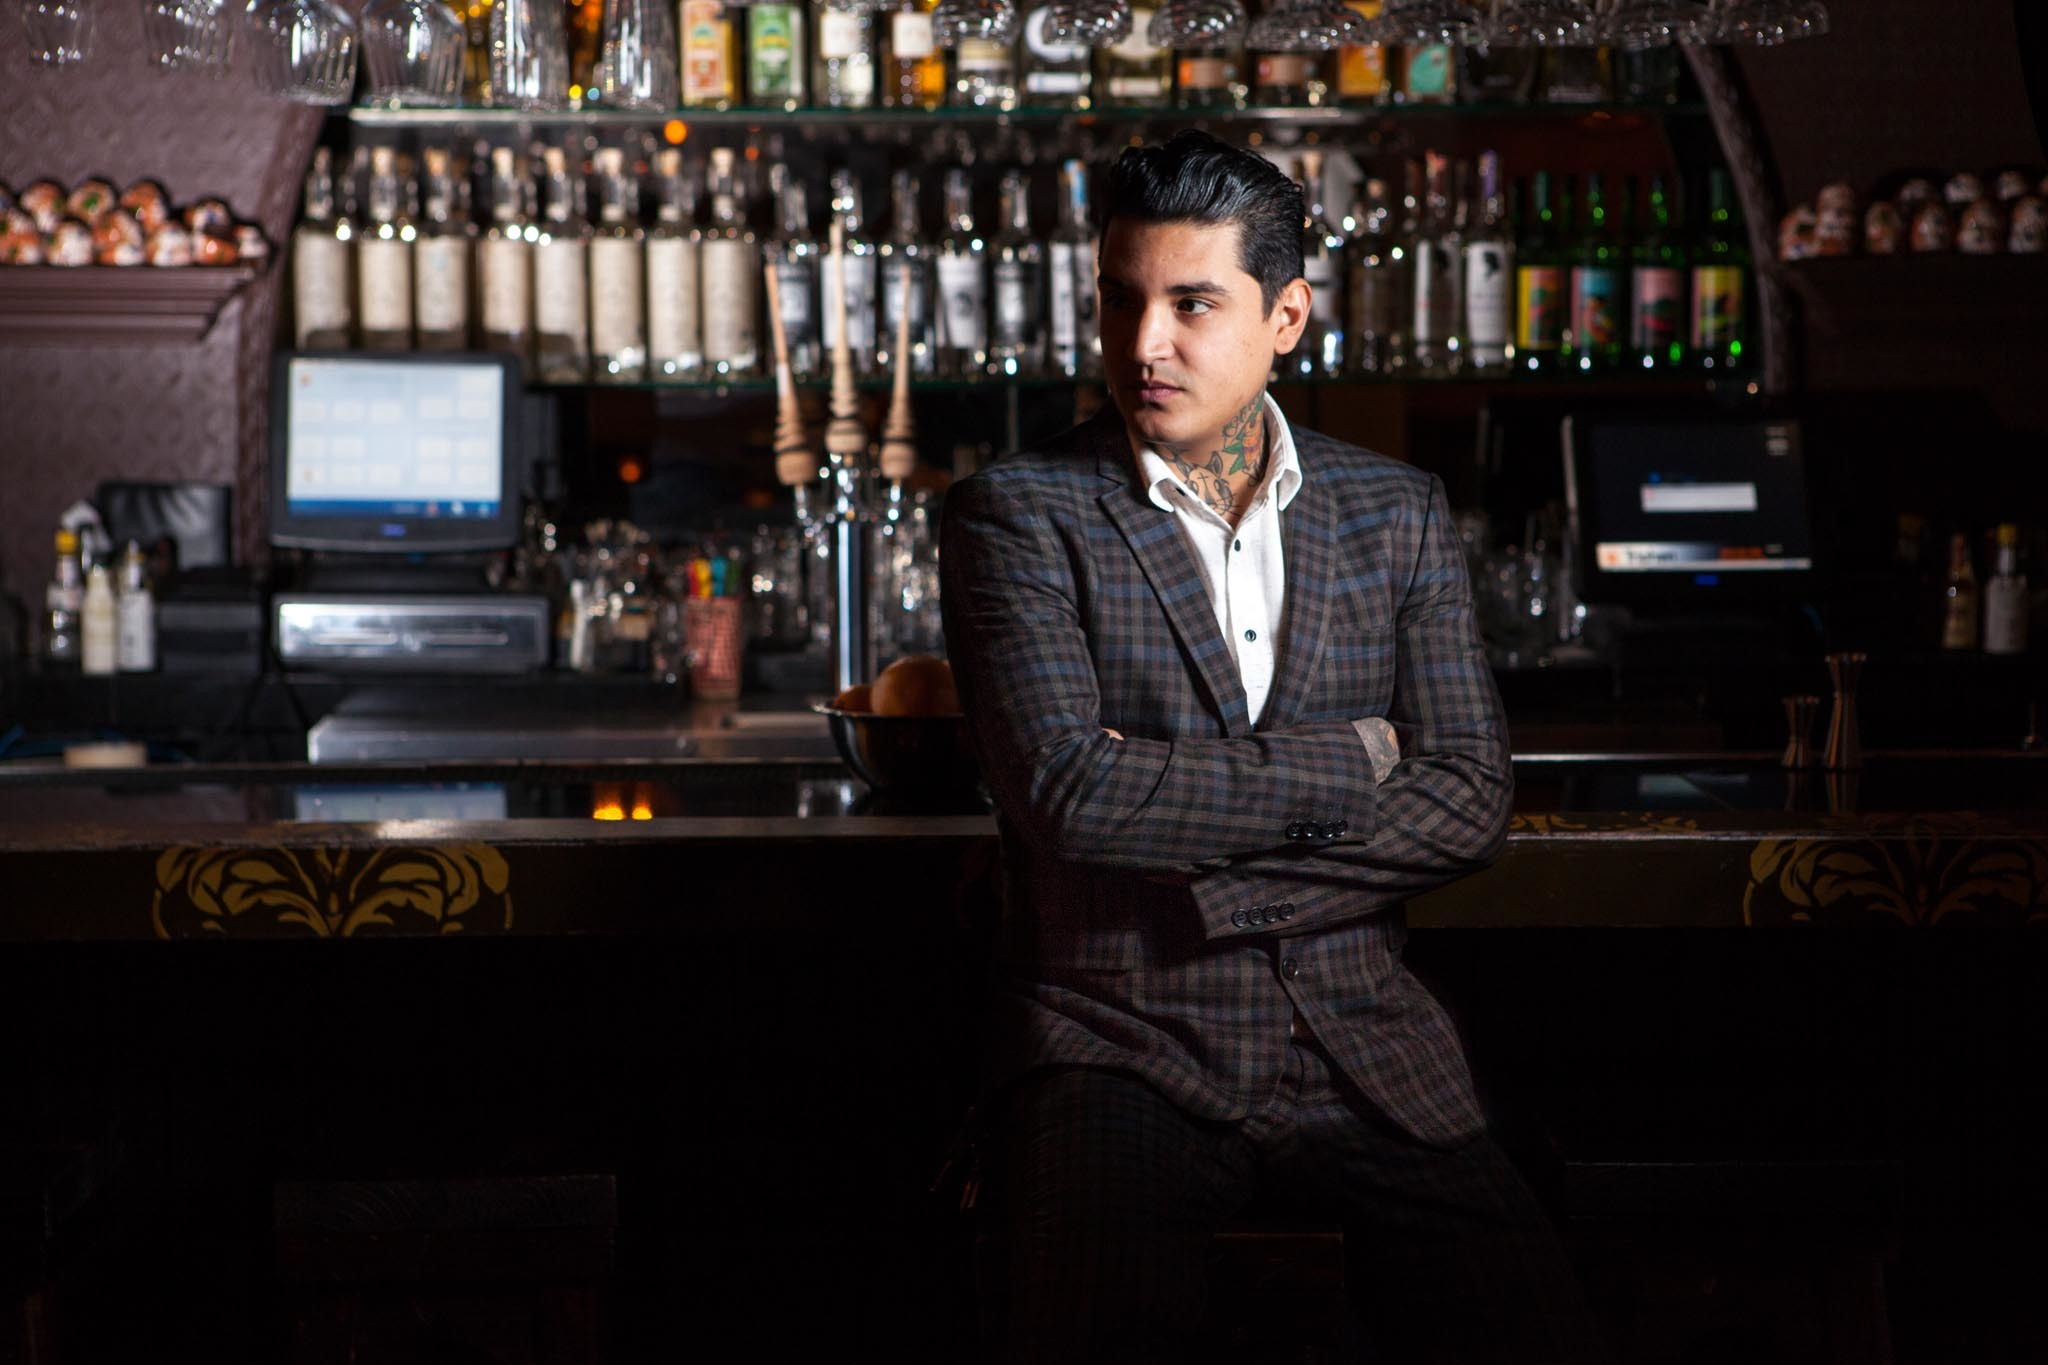 Gilbert Marquez wants you to drink more mezcal